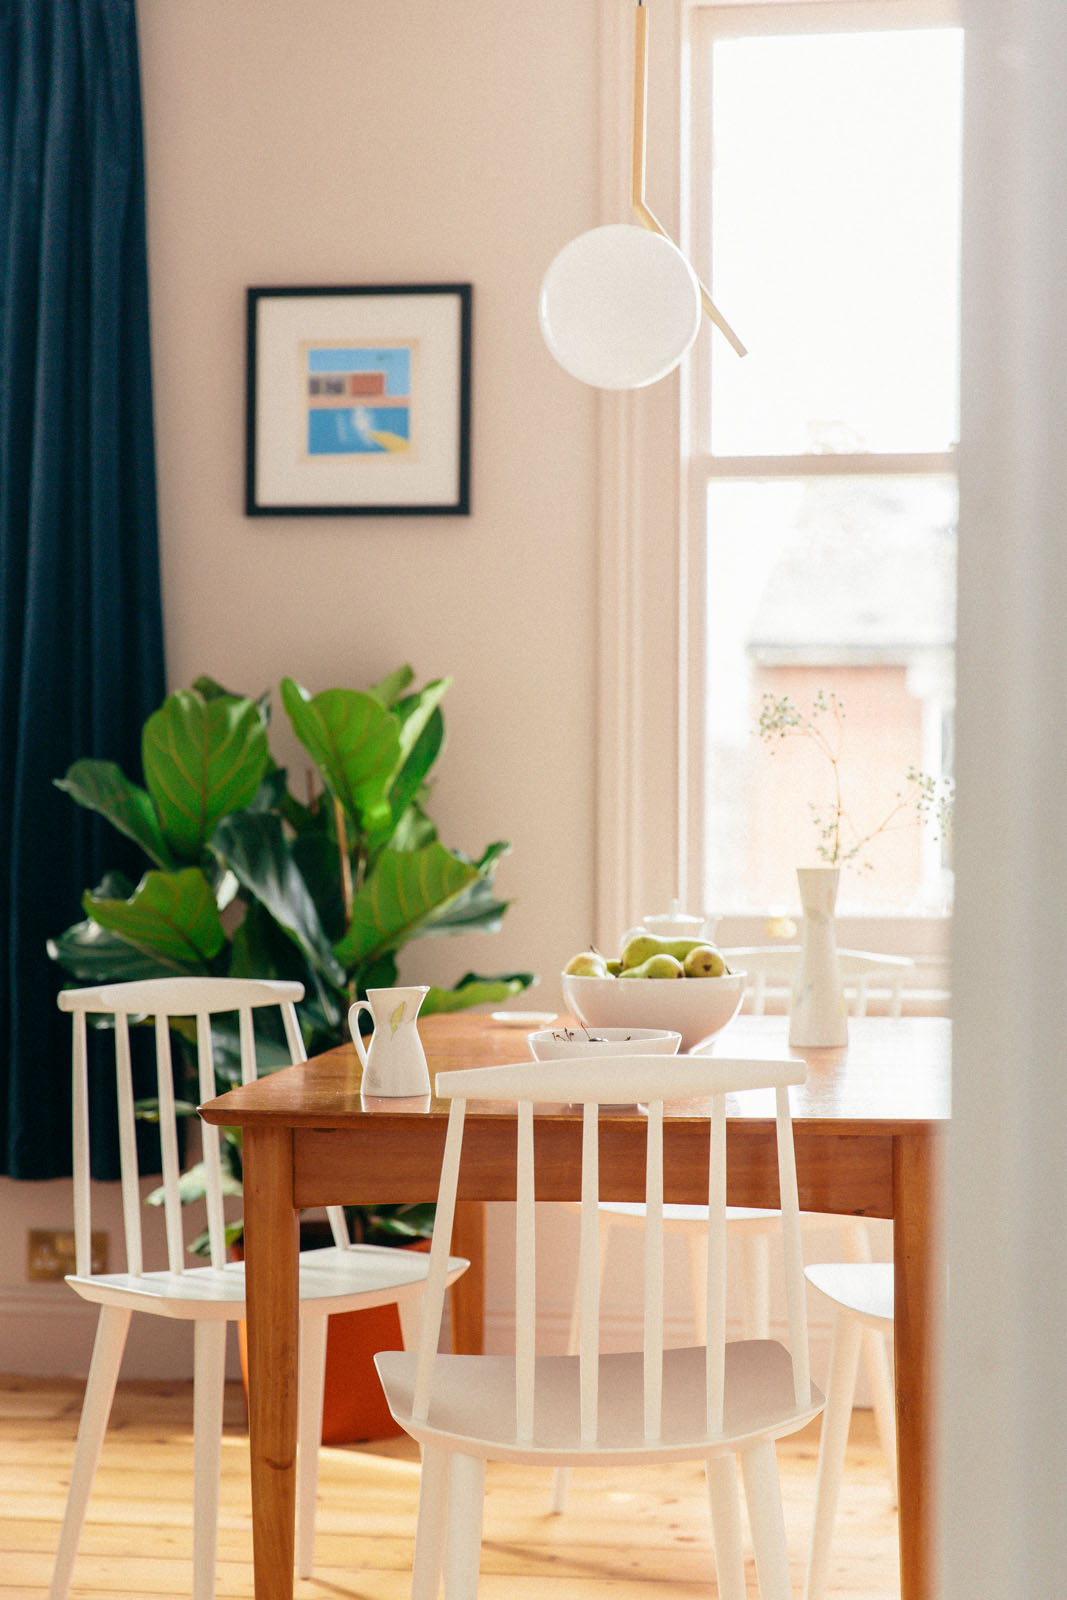 Light and bright room with table and chairs